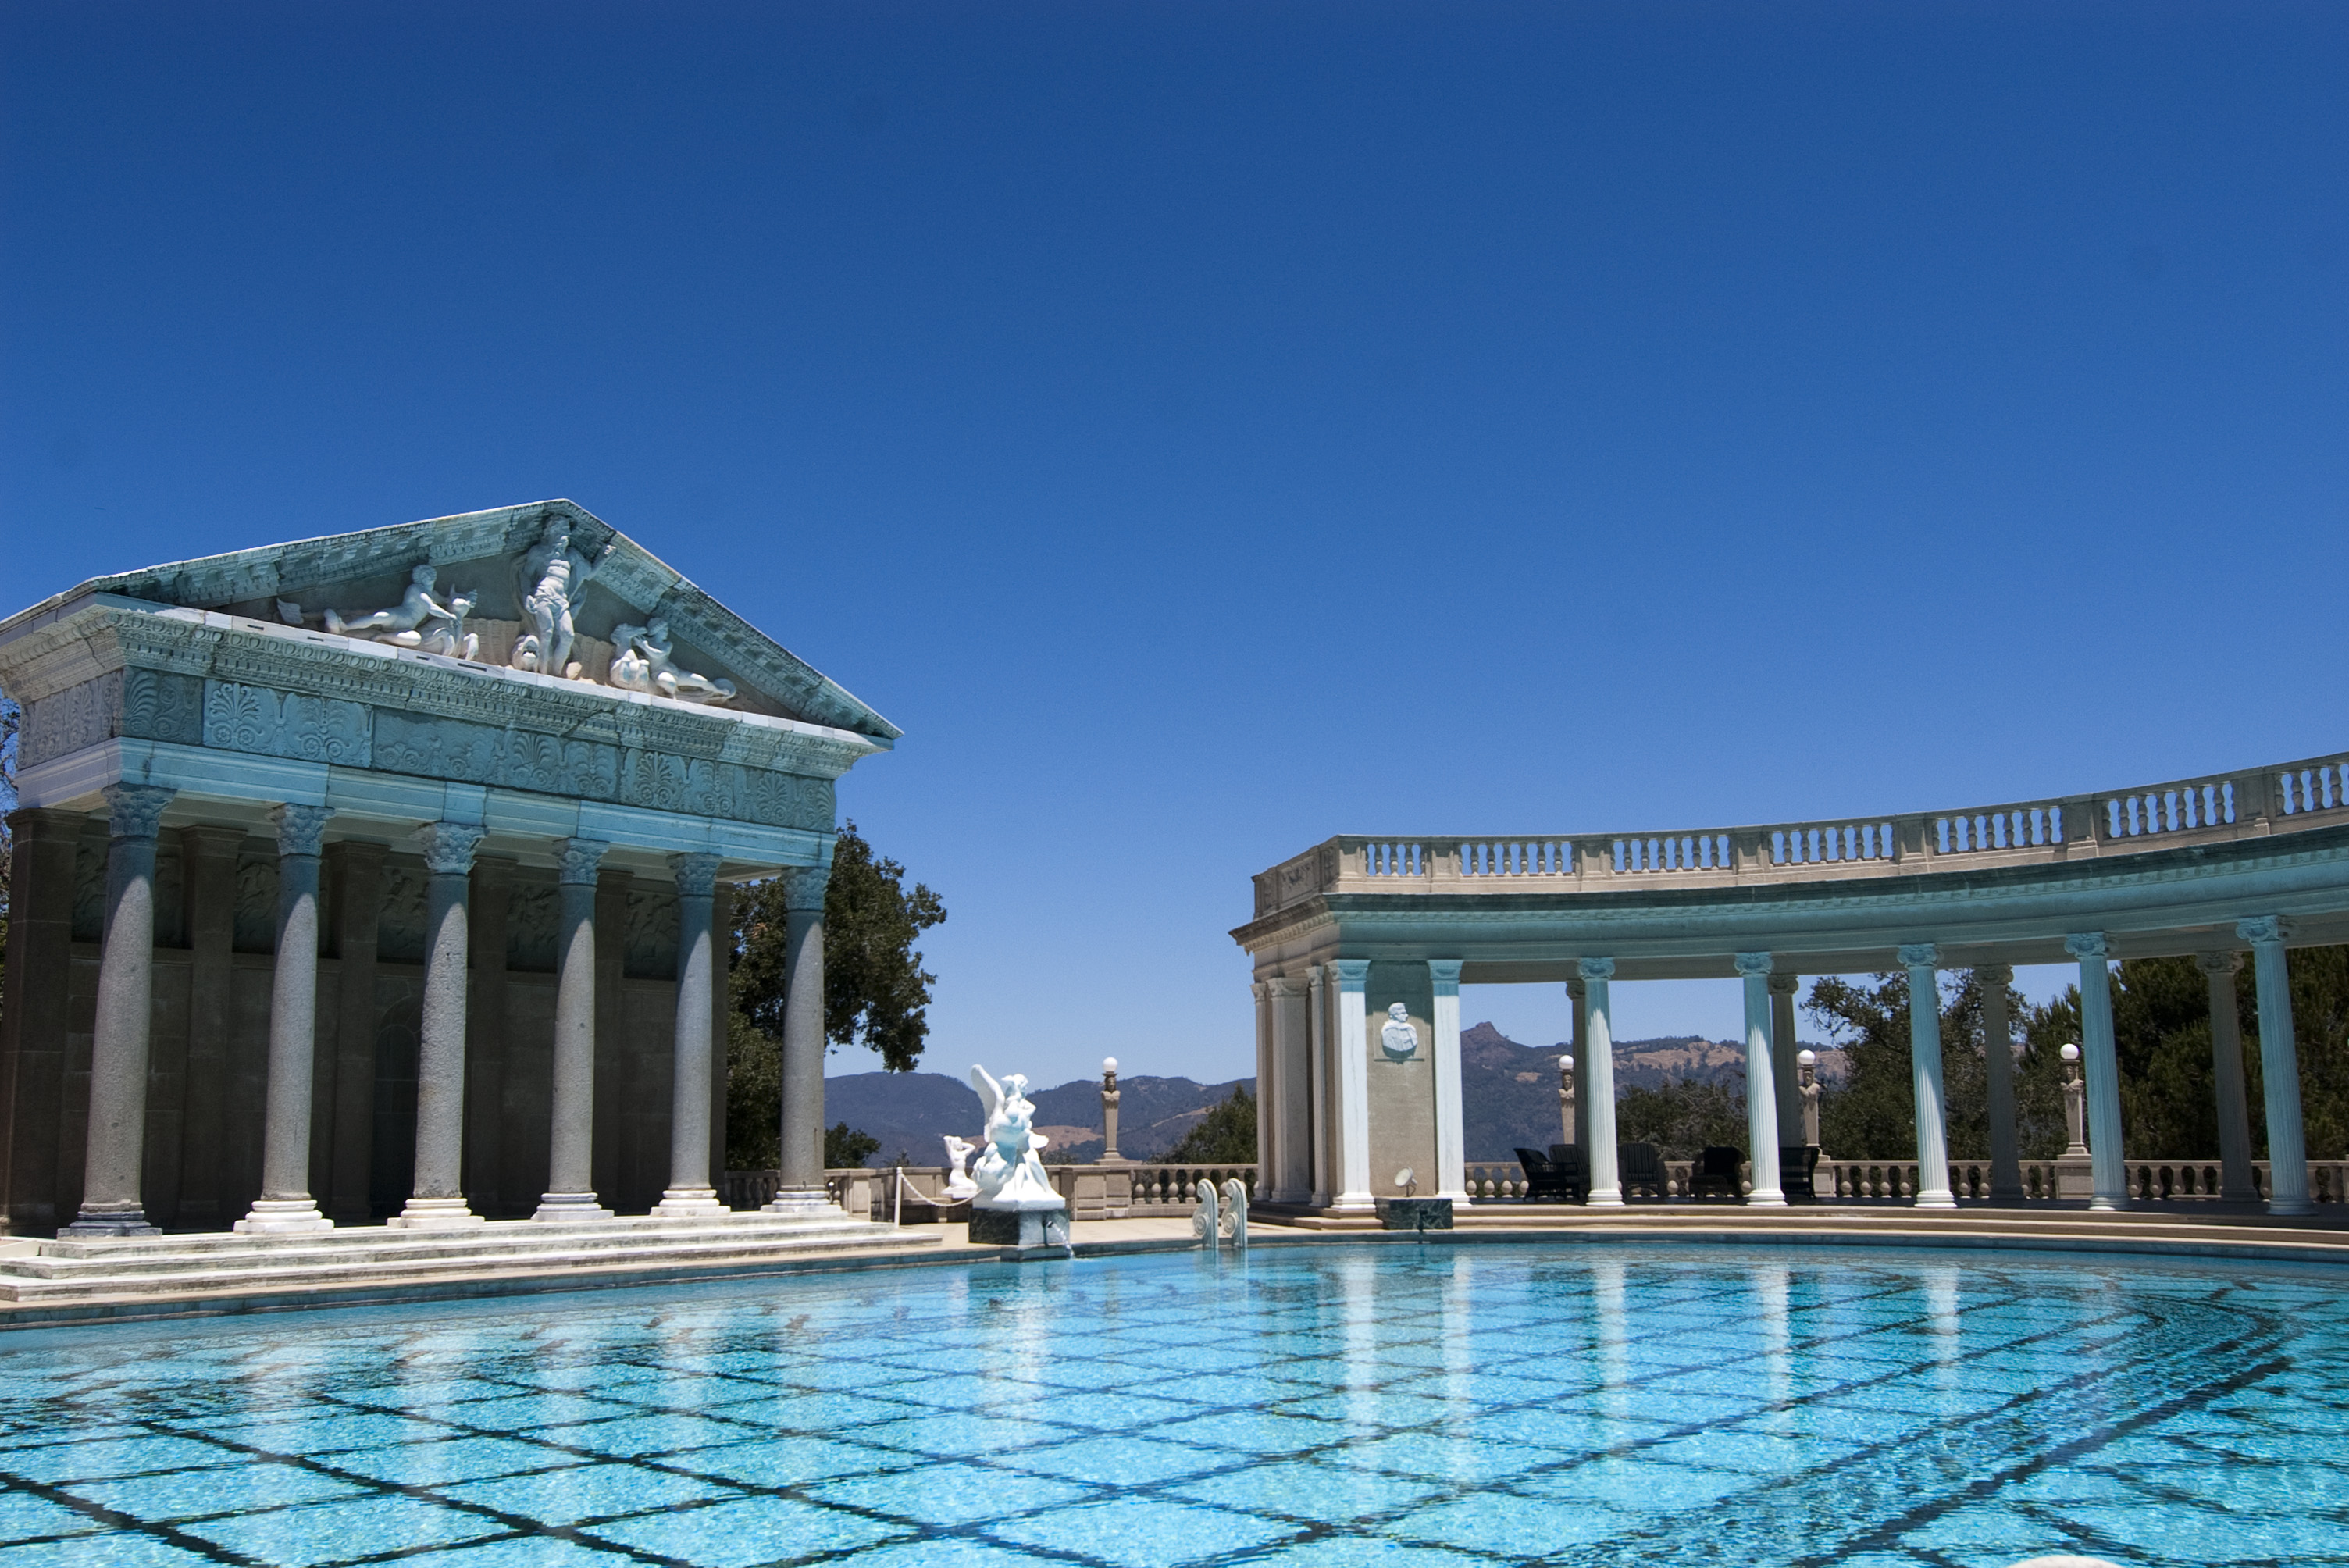 Editorial Use Only: Hearst Castles famous neptune pool with romanesque  architecture, Designed by architect